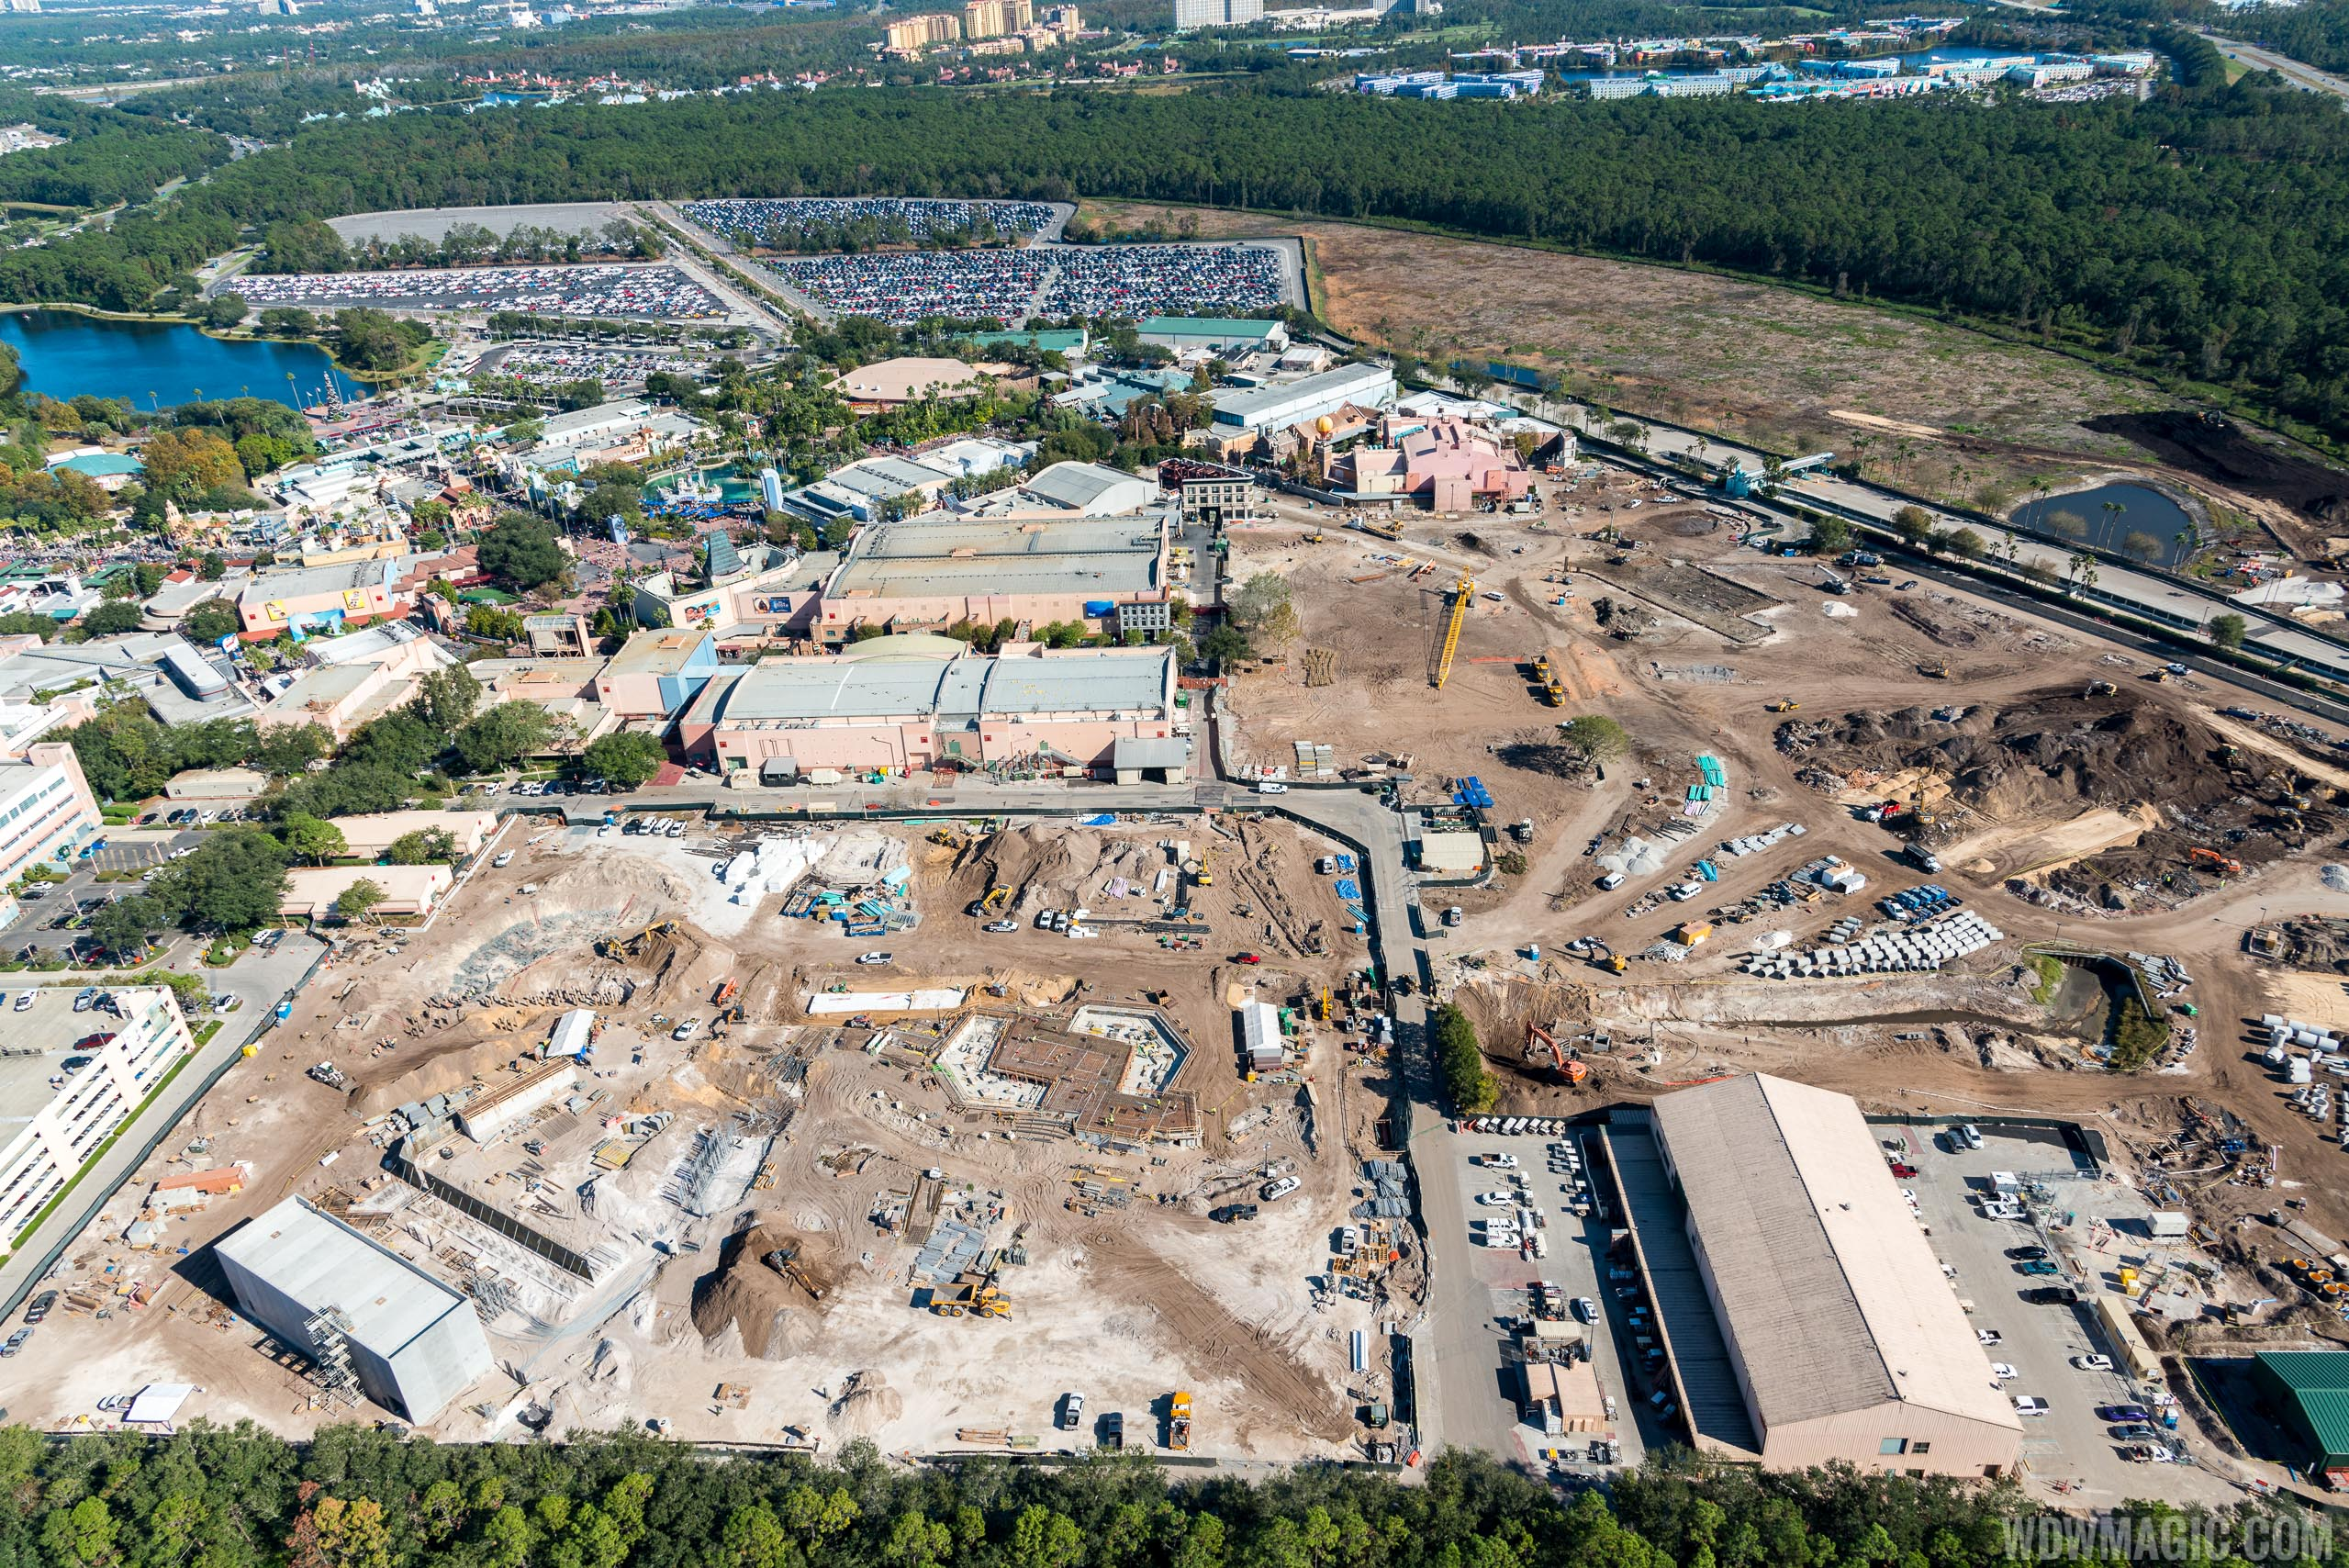 Photo by CJ Berzin @BerzinPhotography. Star Wars Land aerial view.